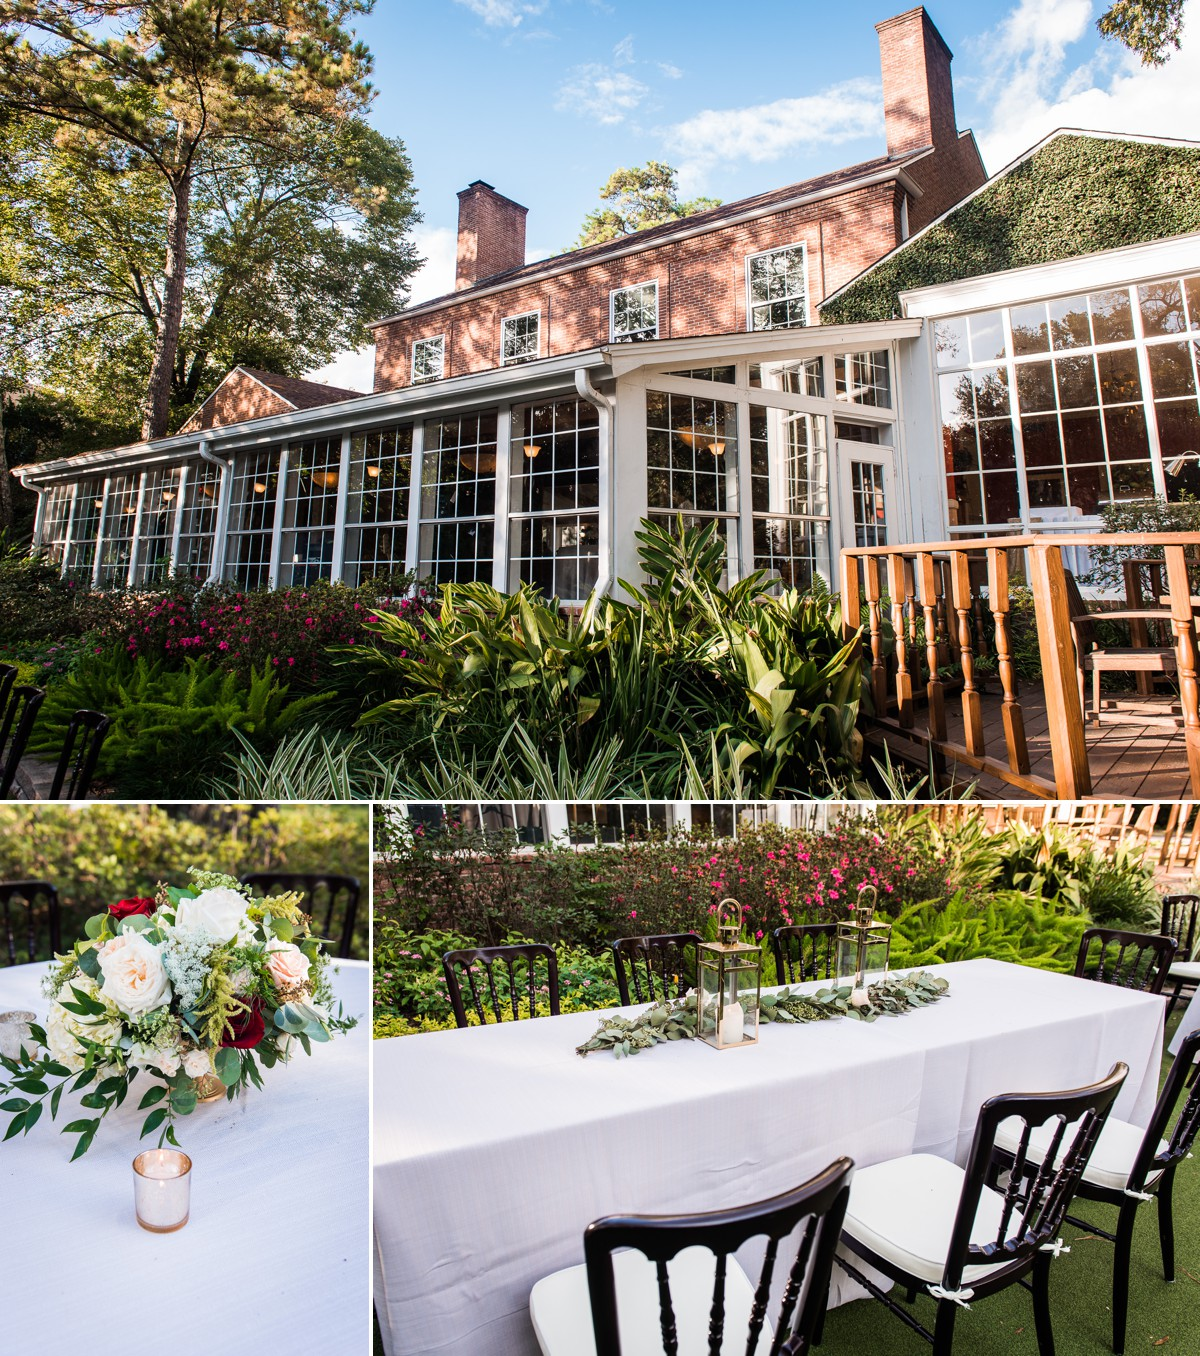 Manor House Wedding at The Houstonian Hotel Outdoor Venue and Table decor